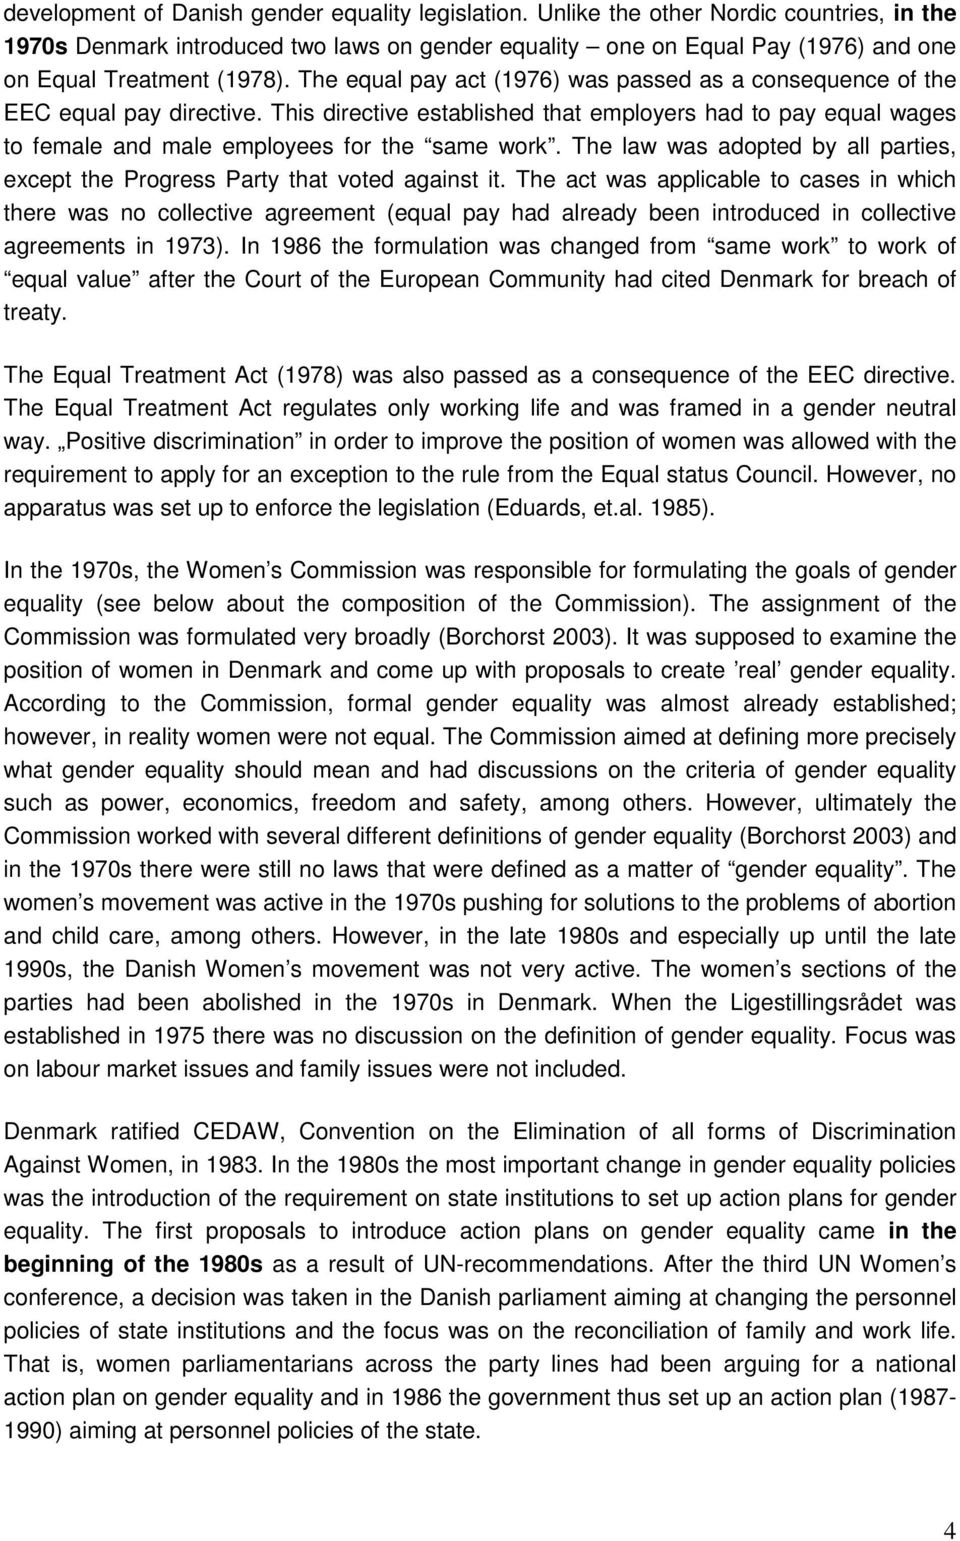 The equal pay act (1976) was passed as a consequence of the EEC equal pay directive. This directive established that employers had to pay equal wages to female and male employees for the same work.